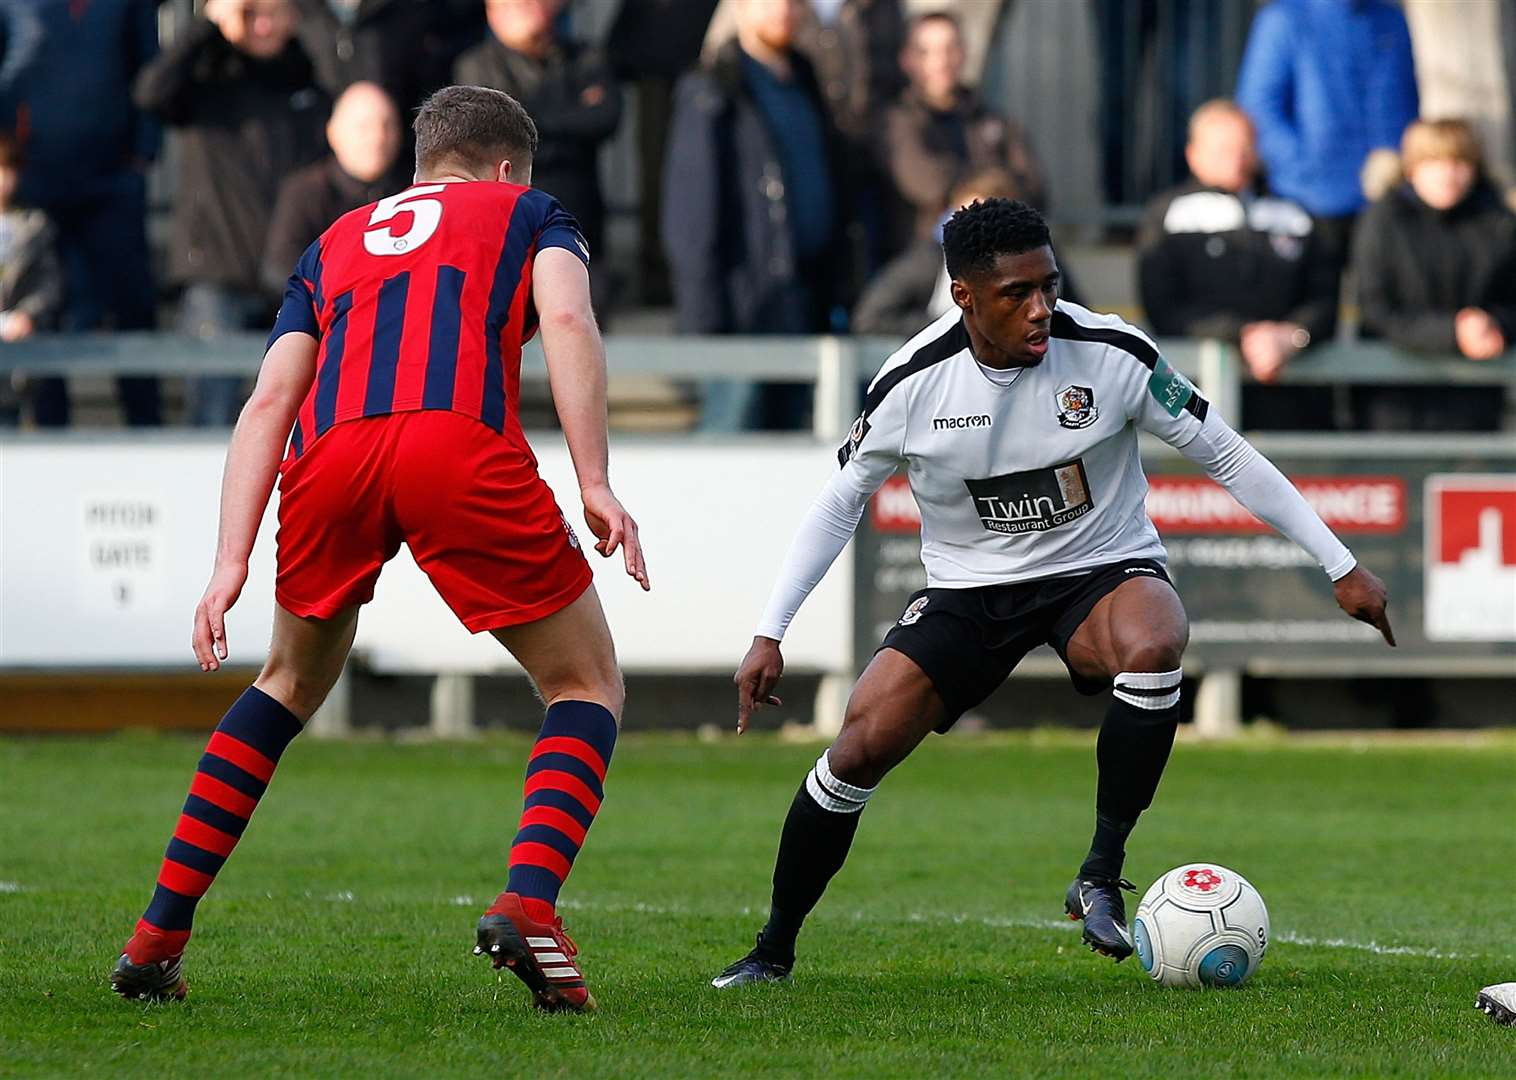 Darren McQueen in action for Dartford against Hampton last season Picture: Andy Jones